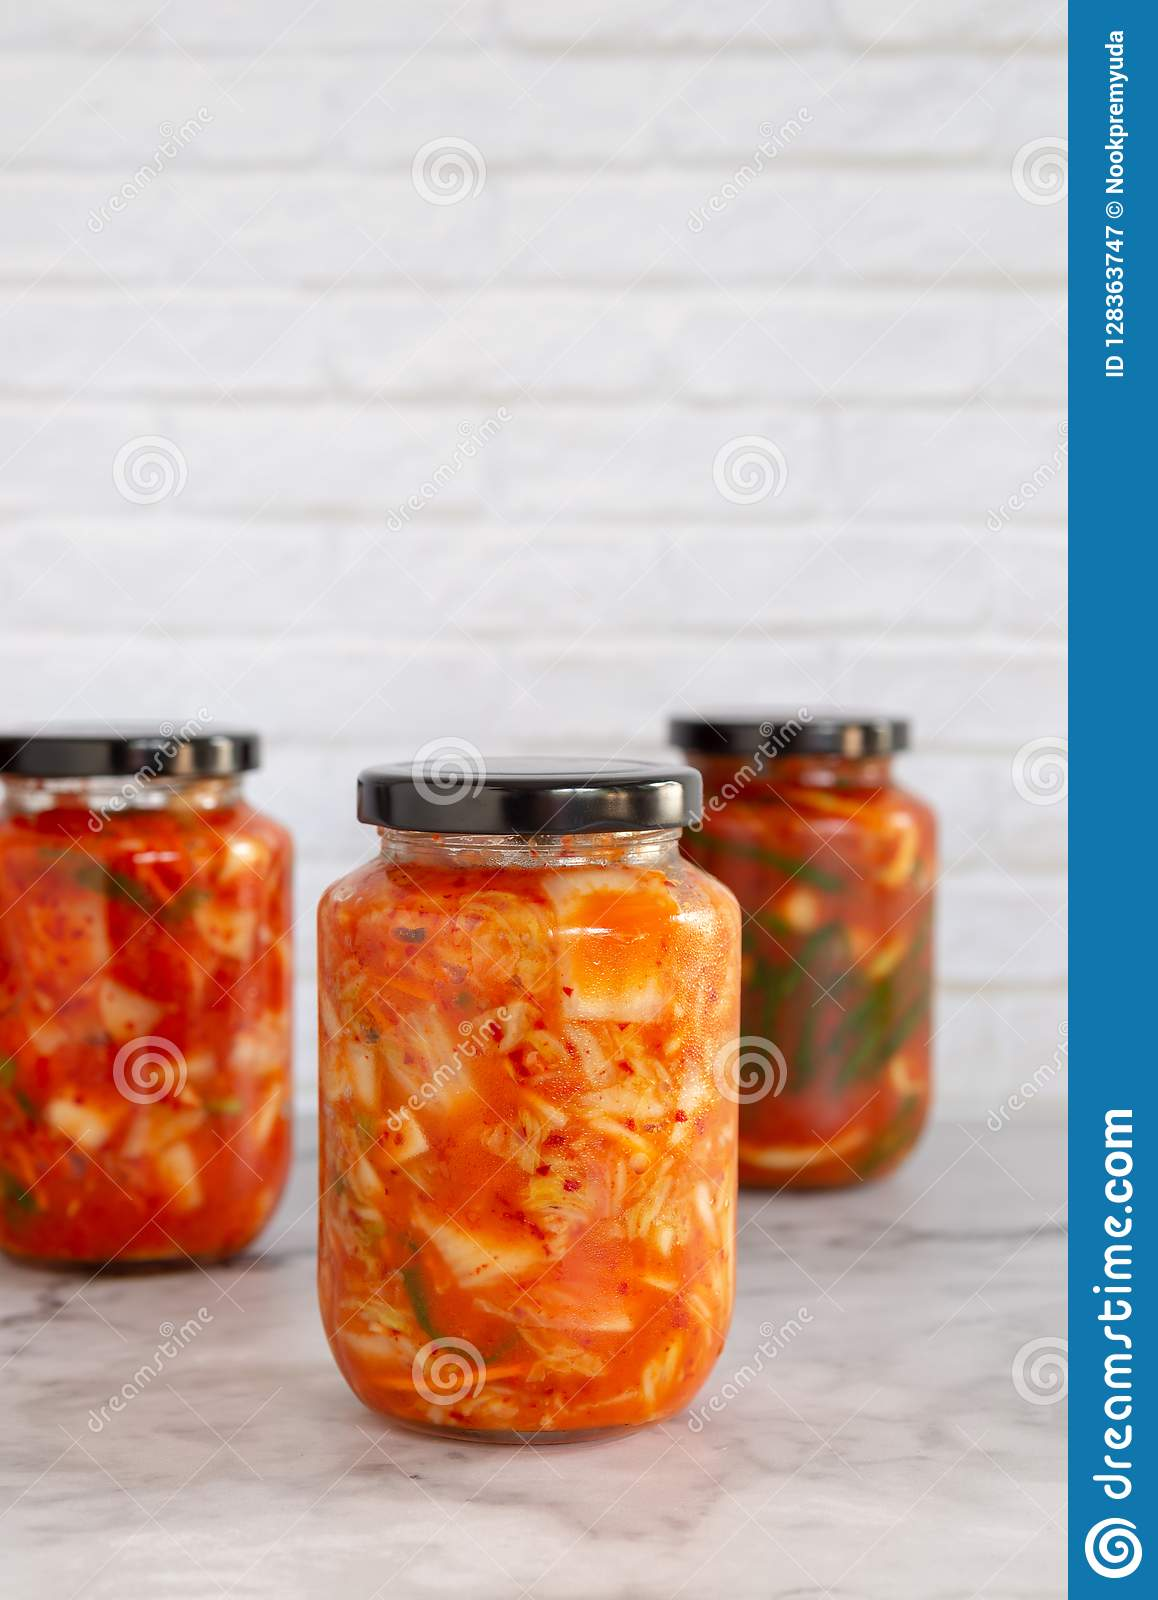 Variety homemade kimchi in a glass jars Winter canning food concept. Simple fermentation recipe.